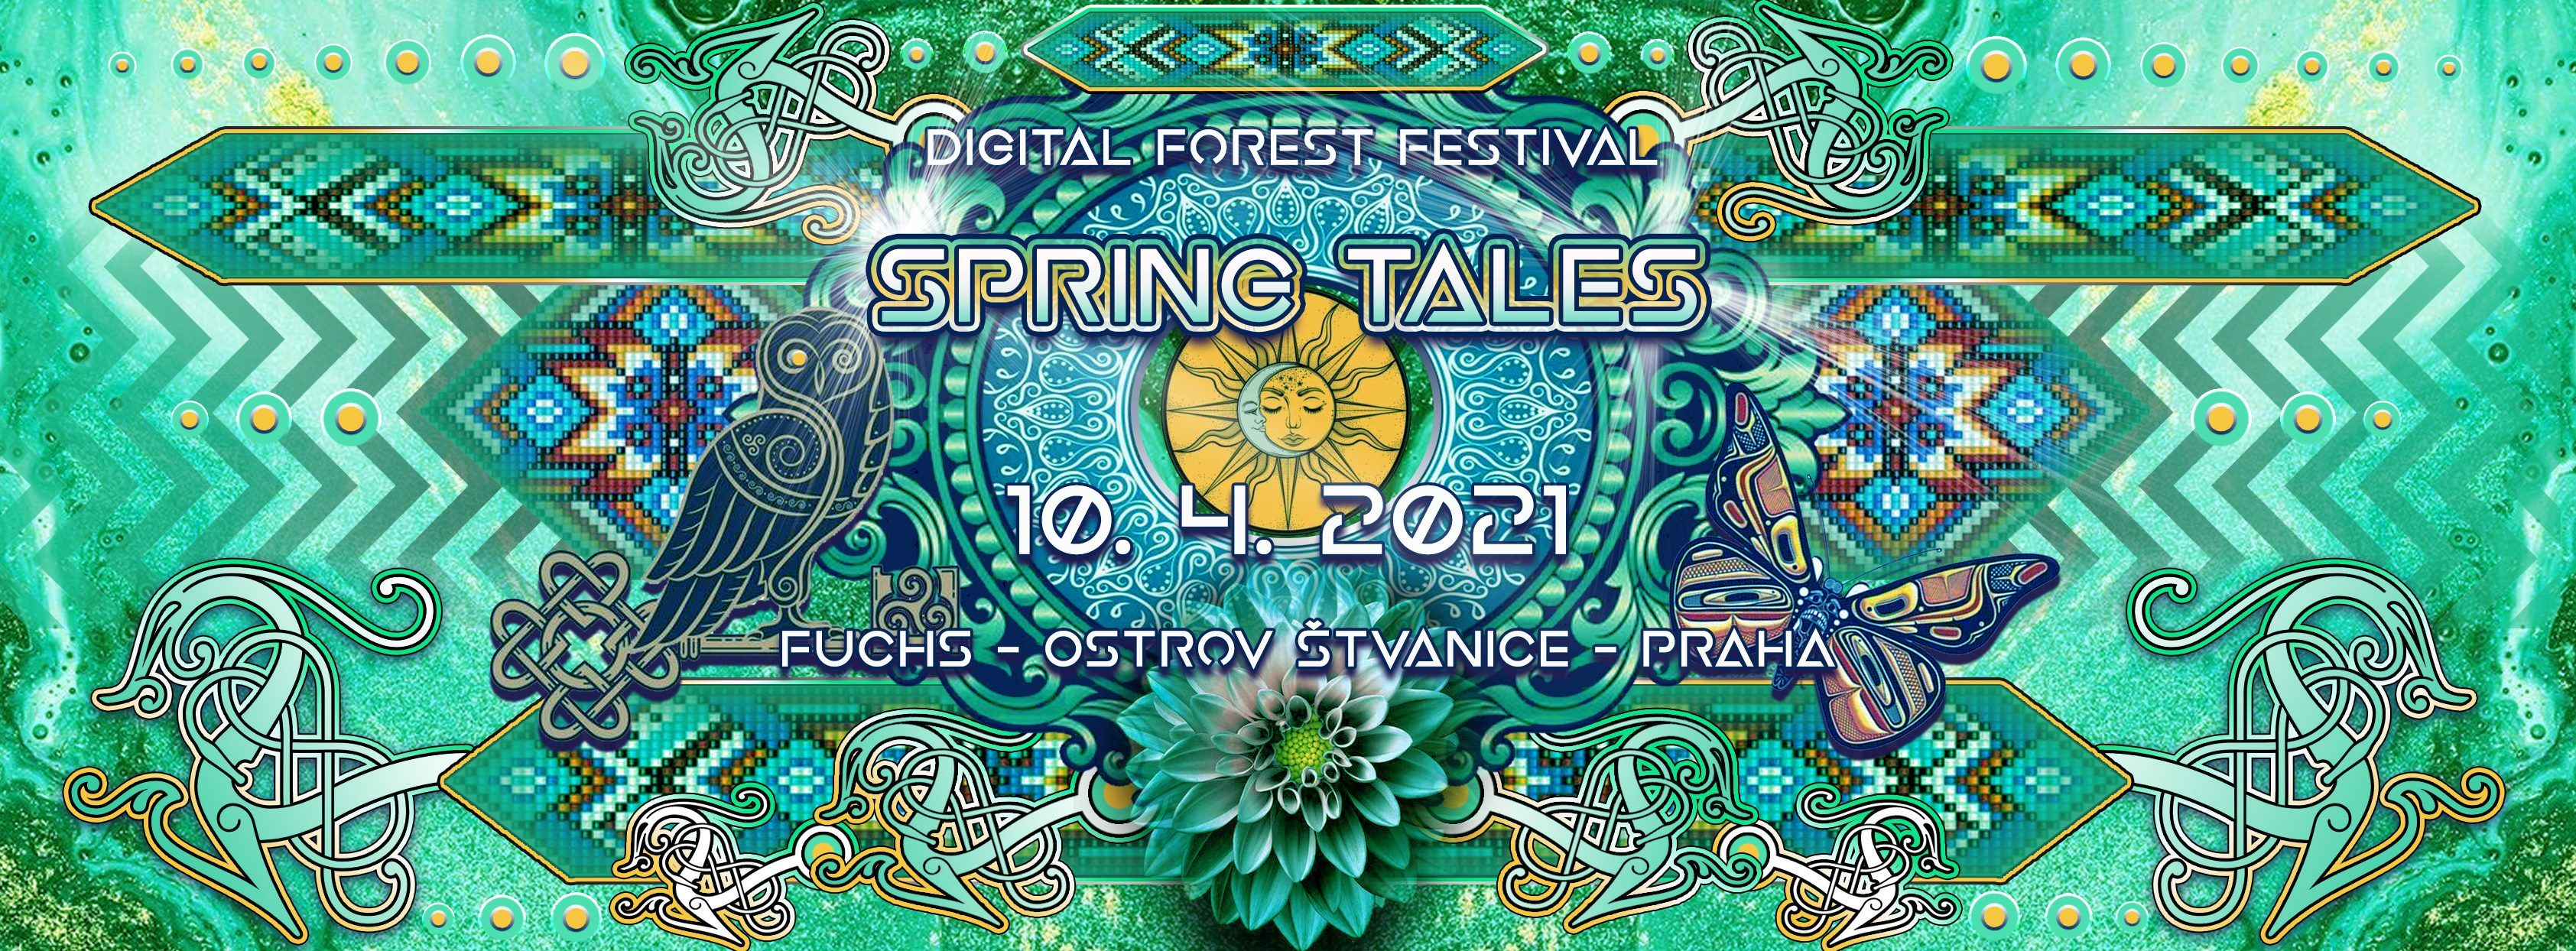 Spring Tales flyer